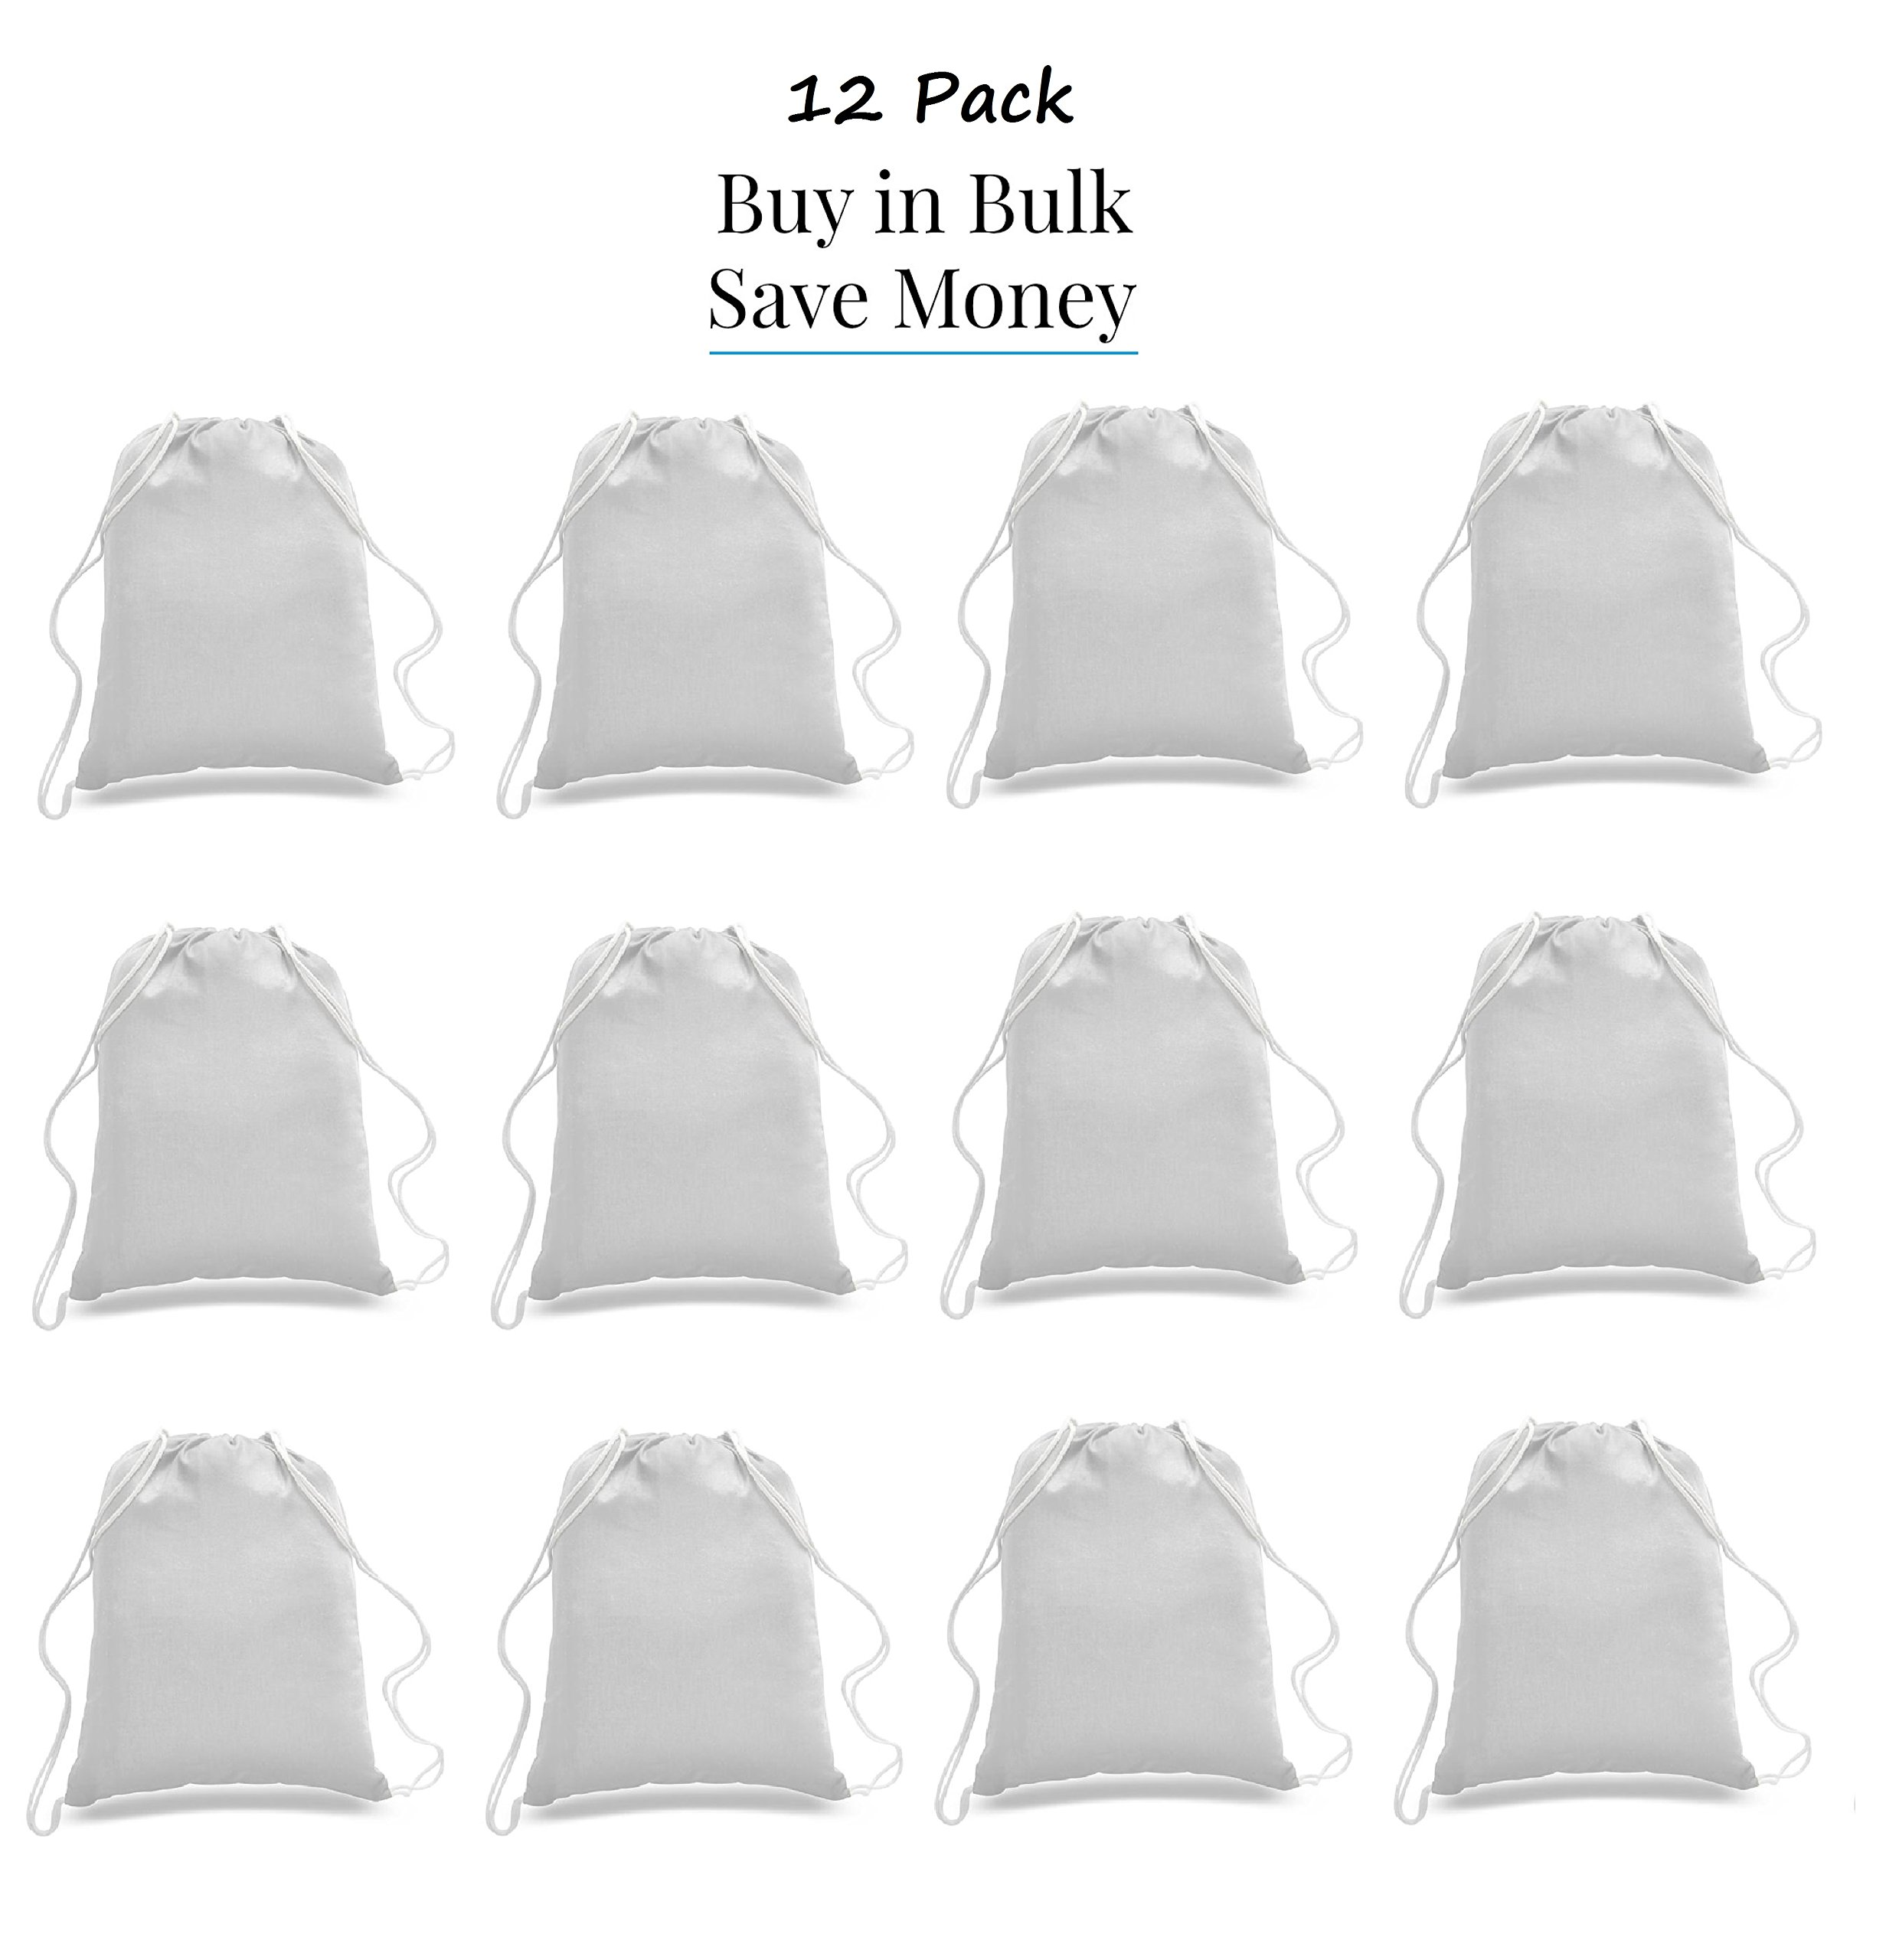 Great Deal! ( 12 Pack ) 1 DOZEN Budget Friendly Sport Drawstring Backpack %100 Cotton Bags for Sport,Gym or Promotional Plain Backpacks (WHITE) by Georgiabags